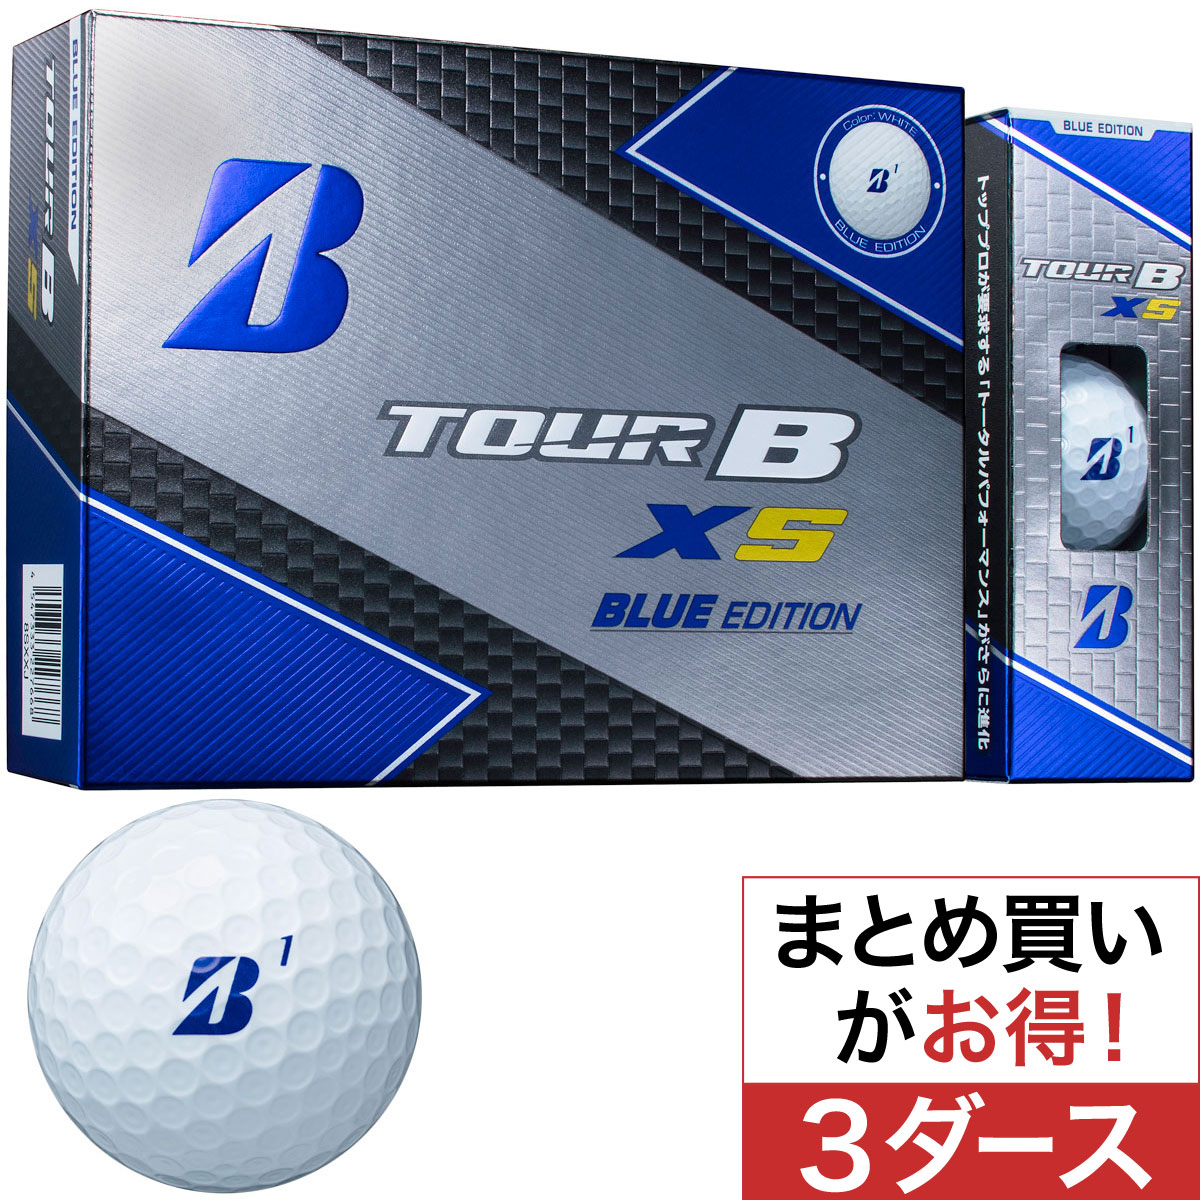 TOUR B XS BLUE EDITION ボール 3ダースセット